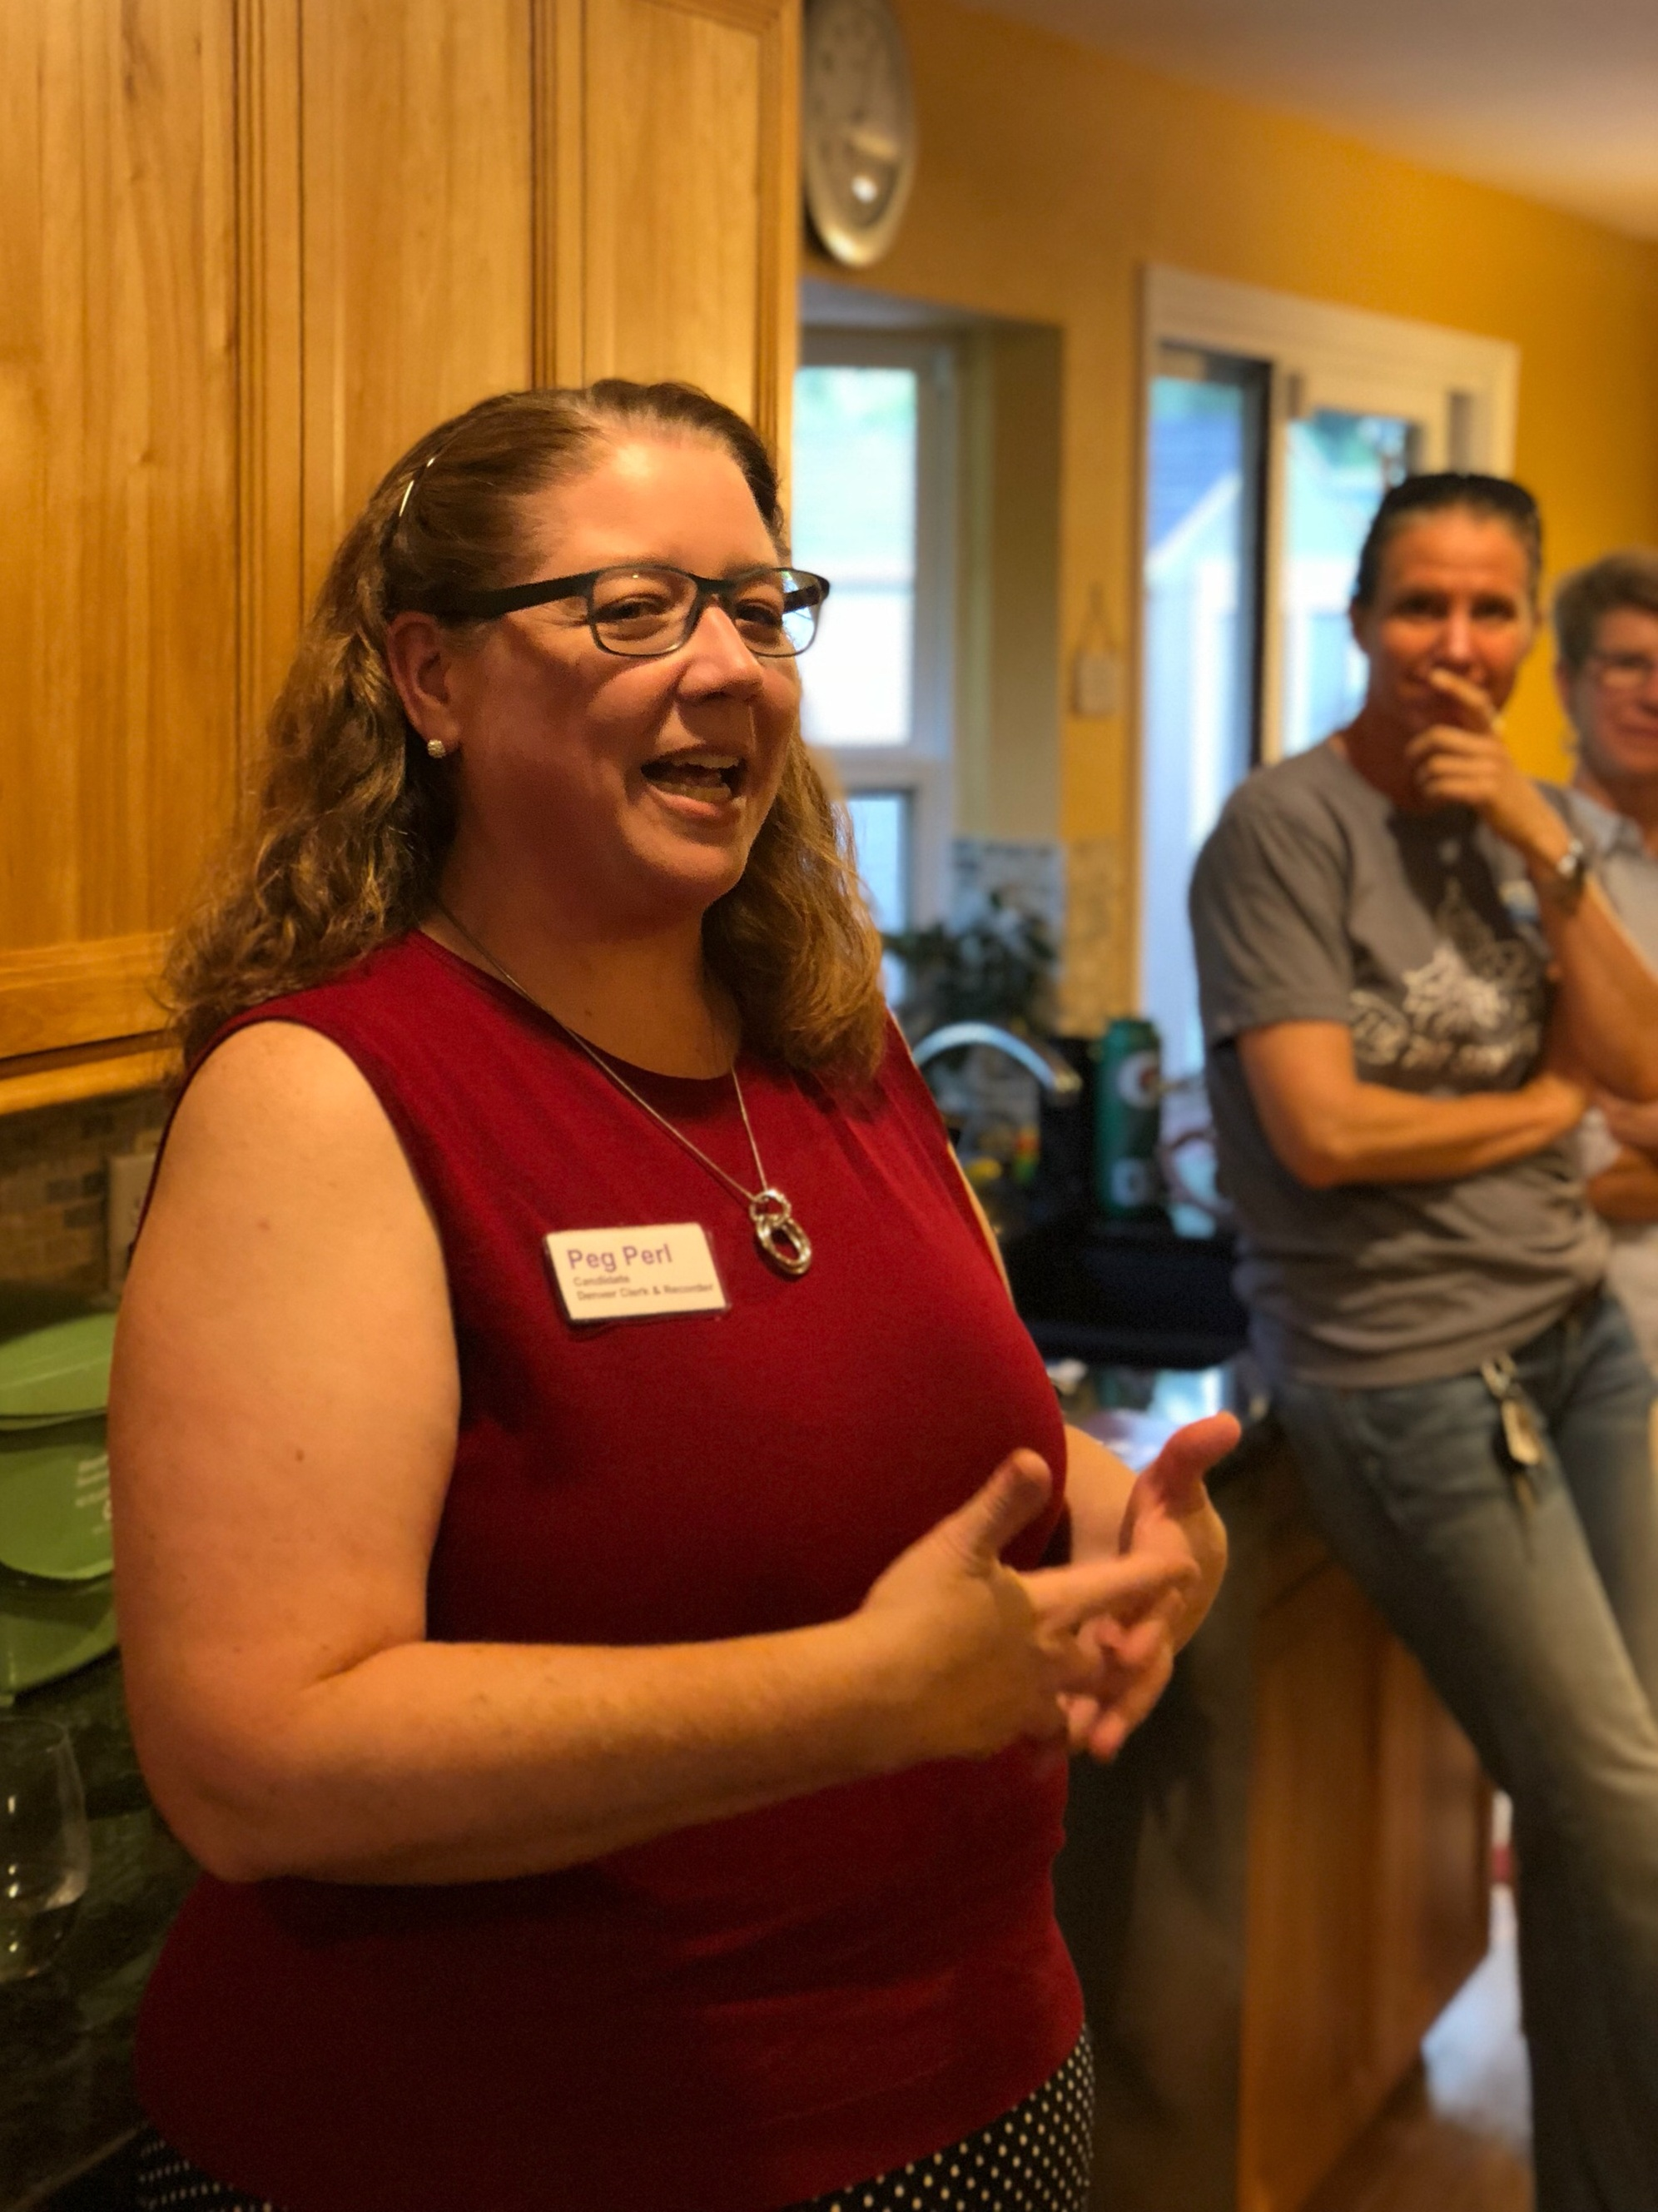 Denver Clerk and Recorder candidate Peg Perl